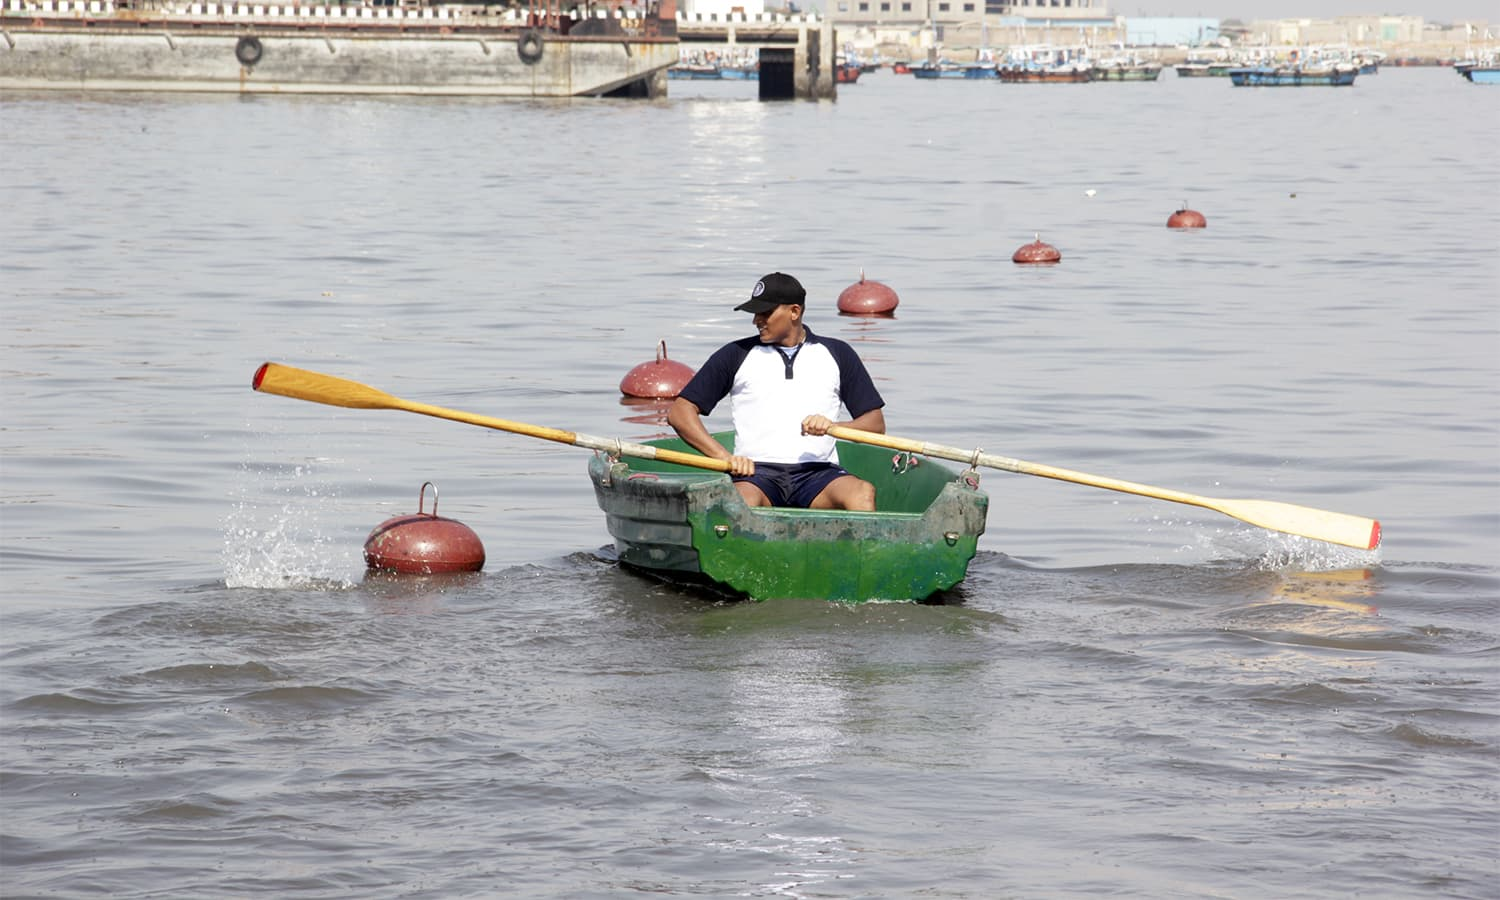 Cadet from Naval Academy of Sri Lanka participates in the seamanship race. —Navy PR